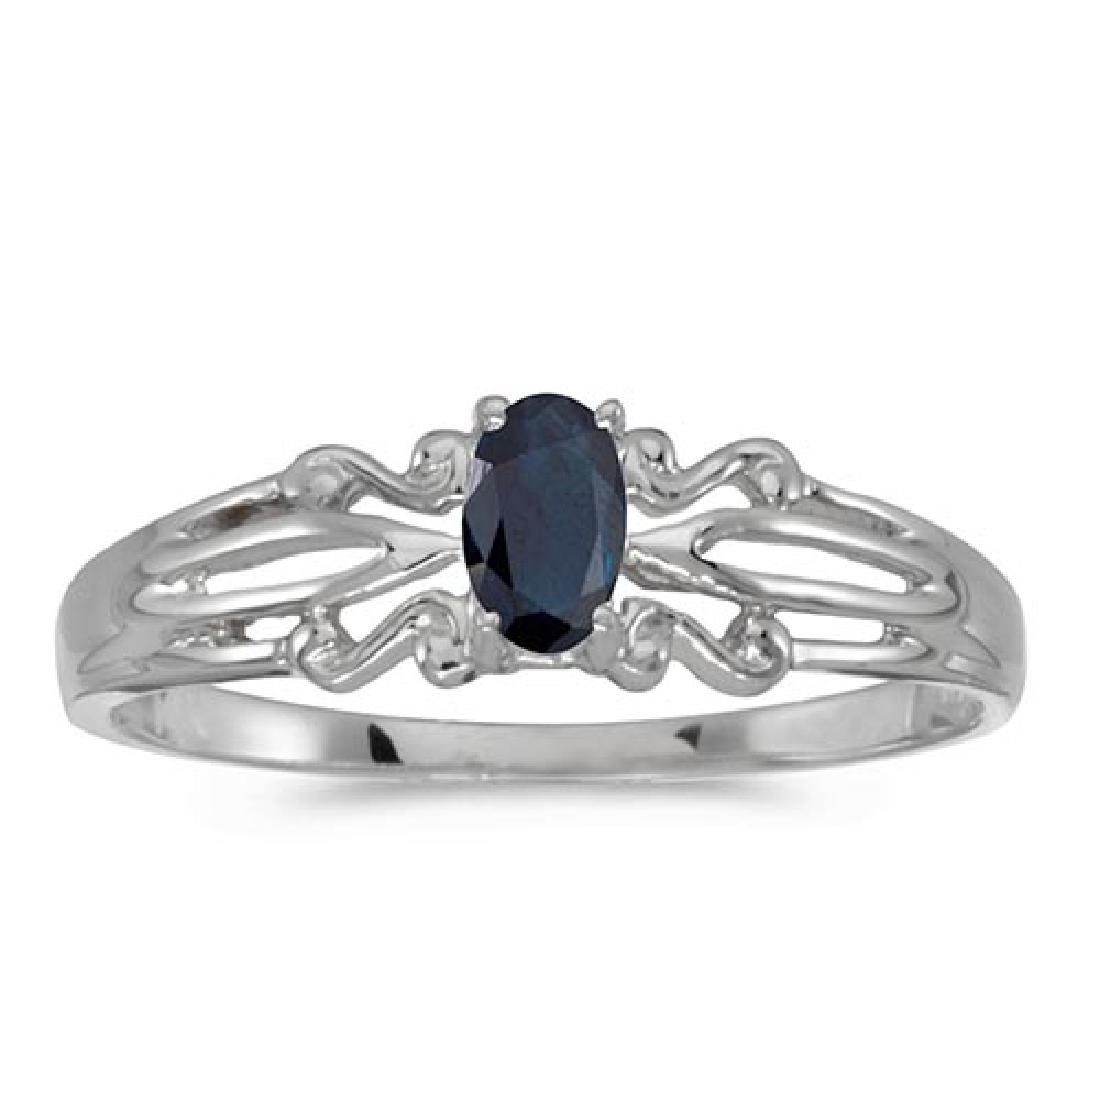 Certified 14k White Gold Oval Sapphire Ring